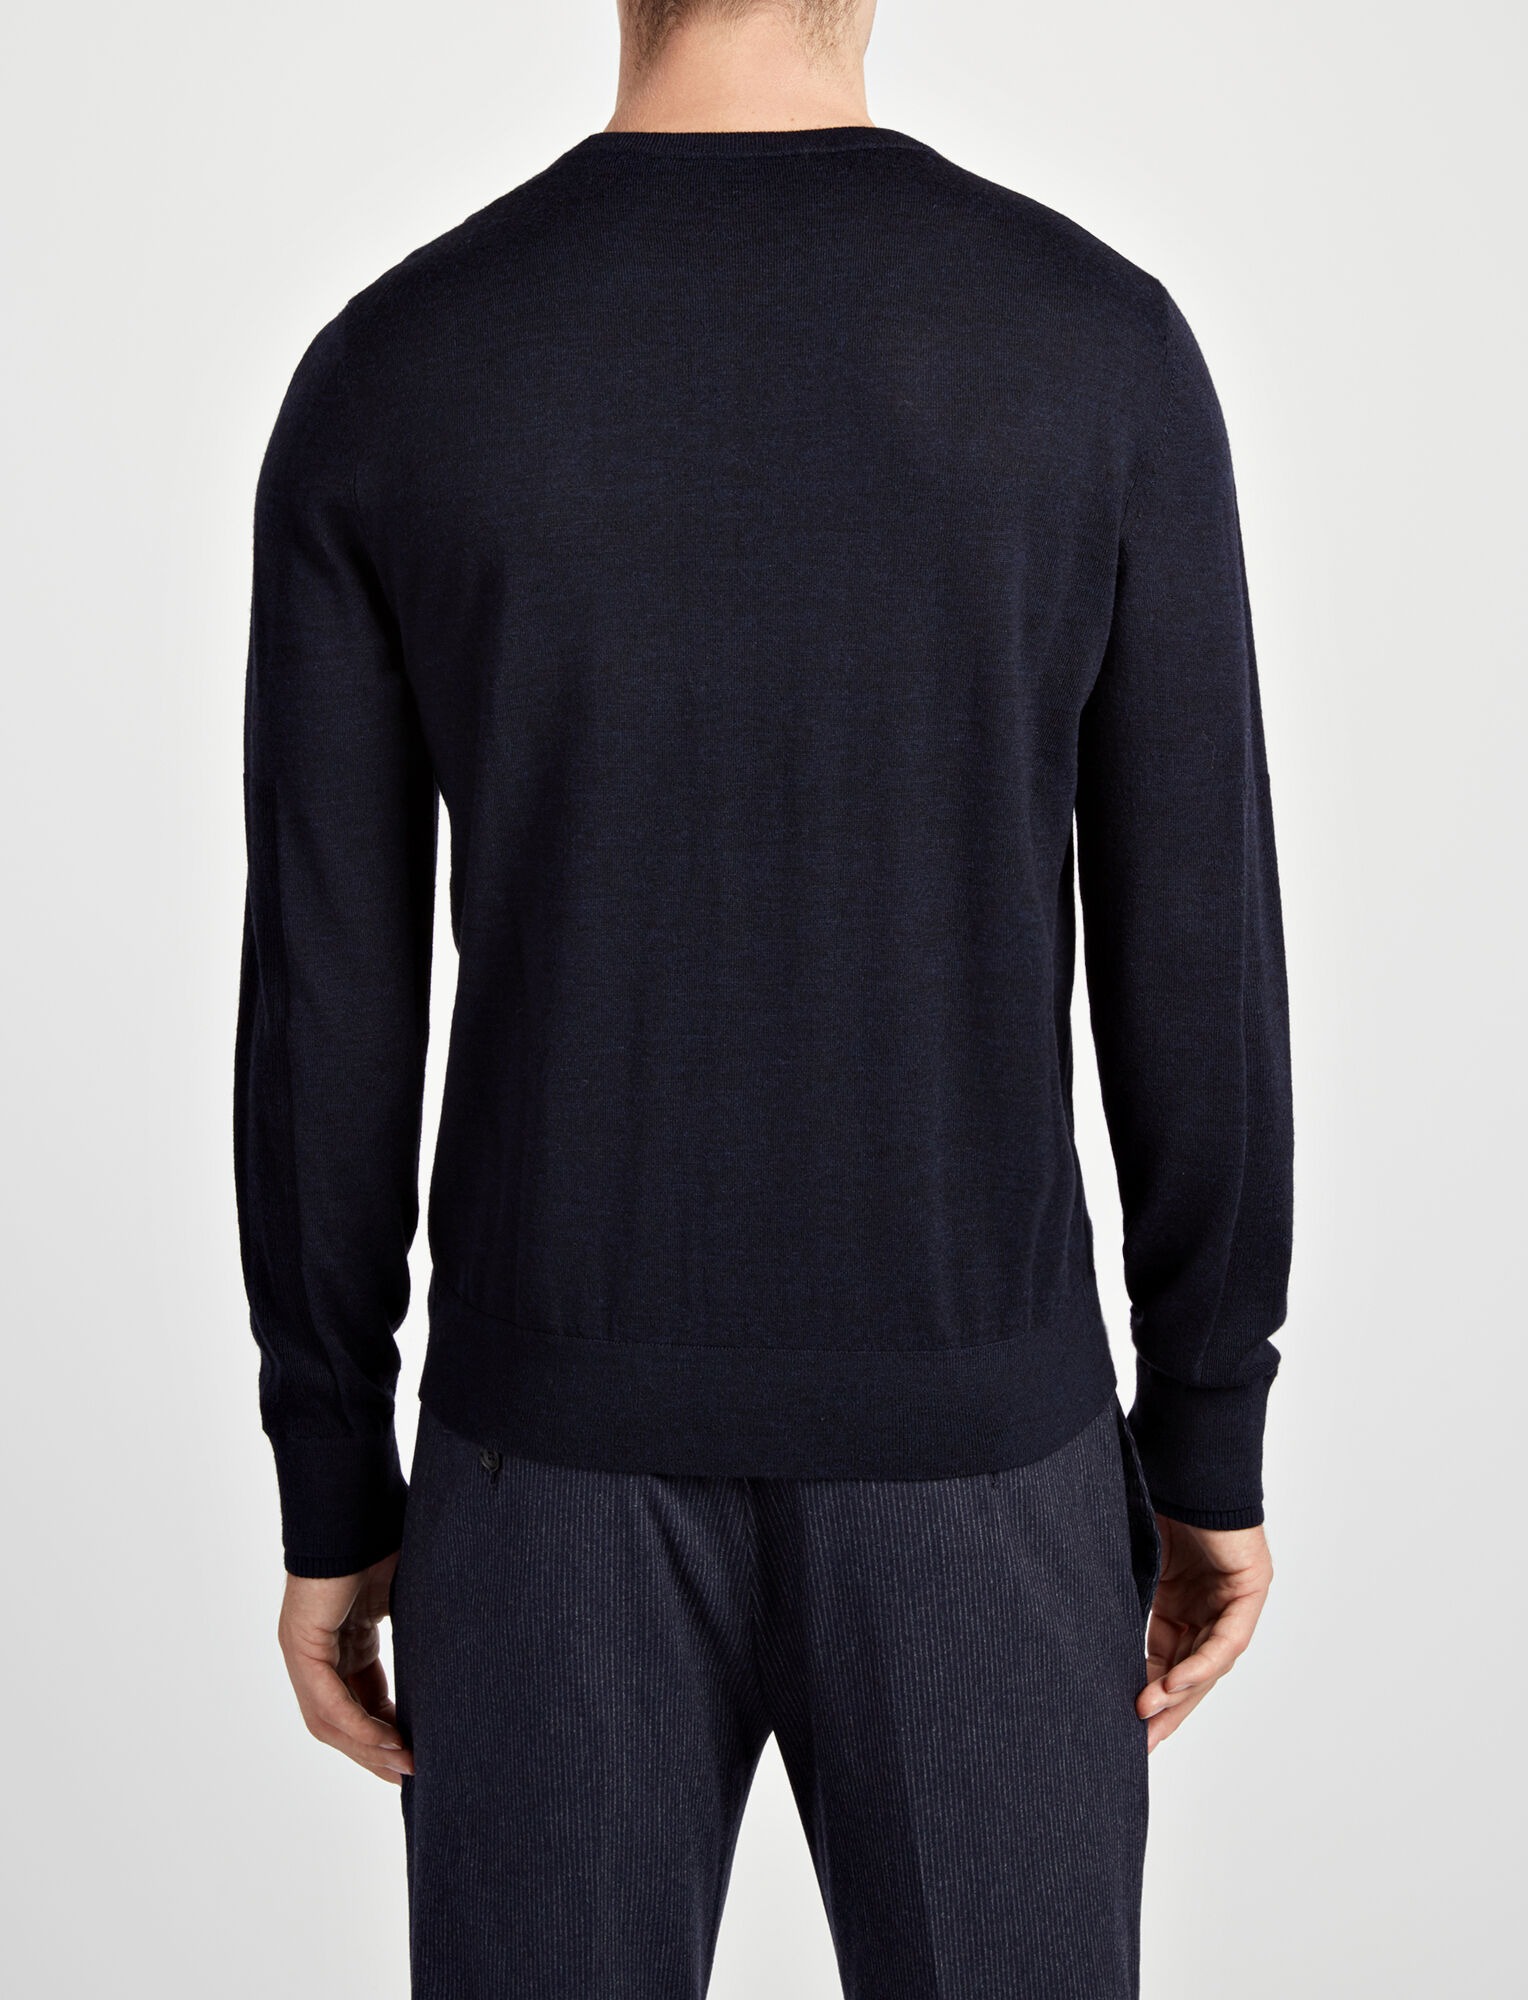 Joseph, Merinos + Rib Patch Sweater, in NAVY